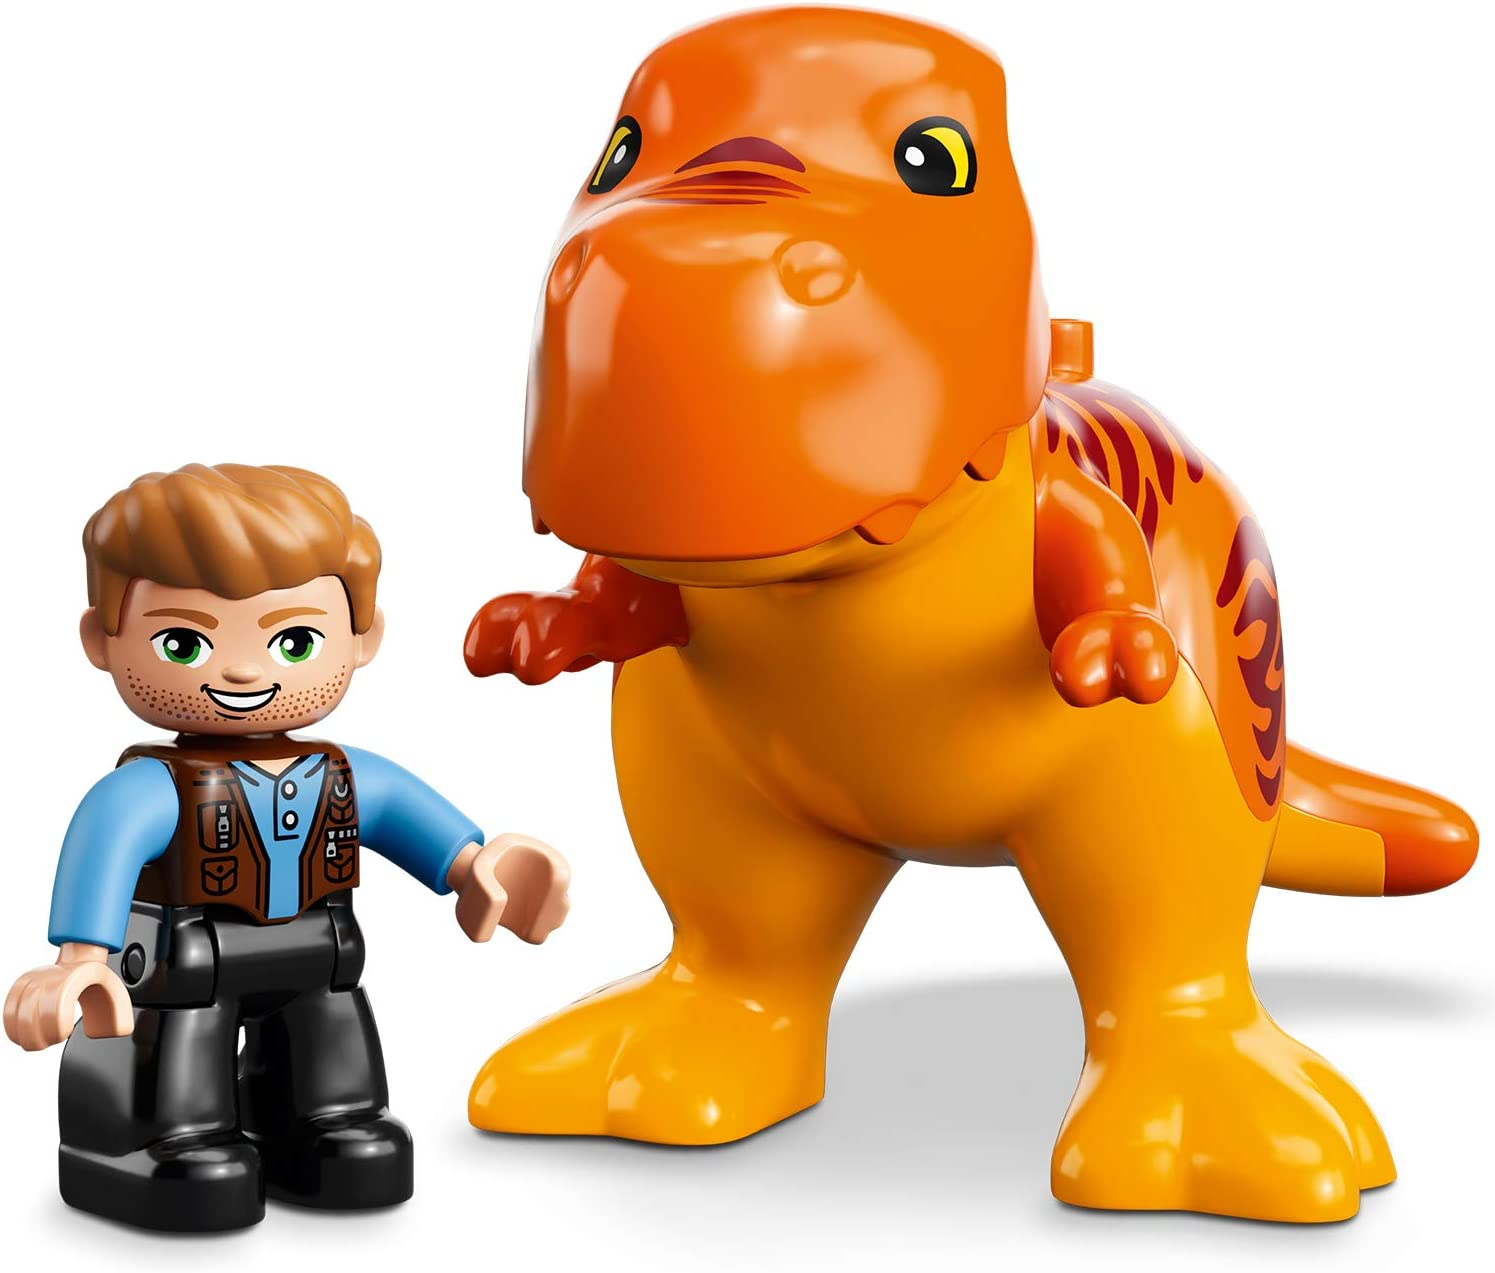 rex Tower Owen Grady Minifigure Owen Grady Minifigure Dinosaur Figure LEGO 10880 DUPLO Jurassic World T and Toy Car Building Set for Preschool Kids